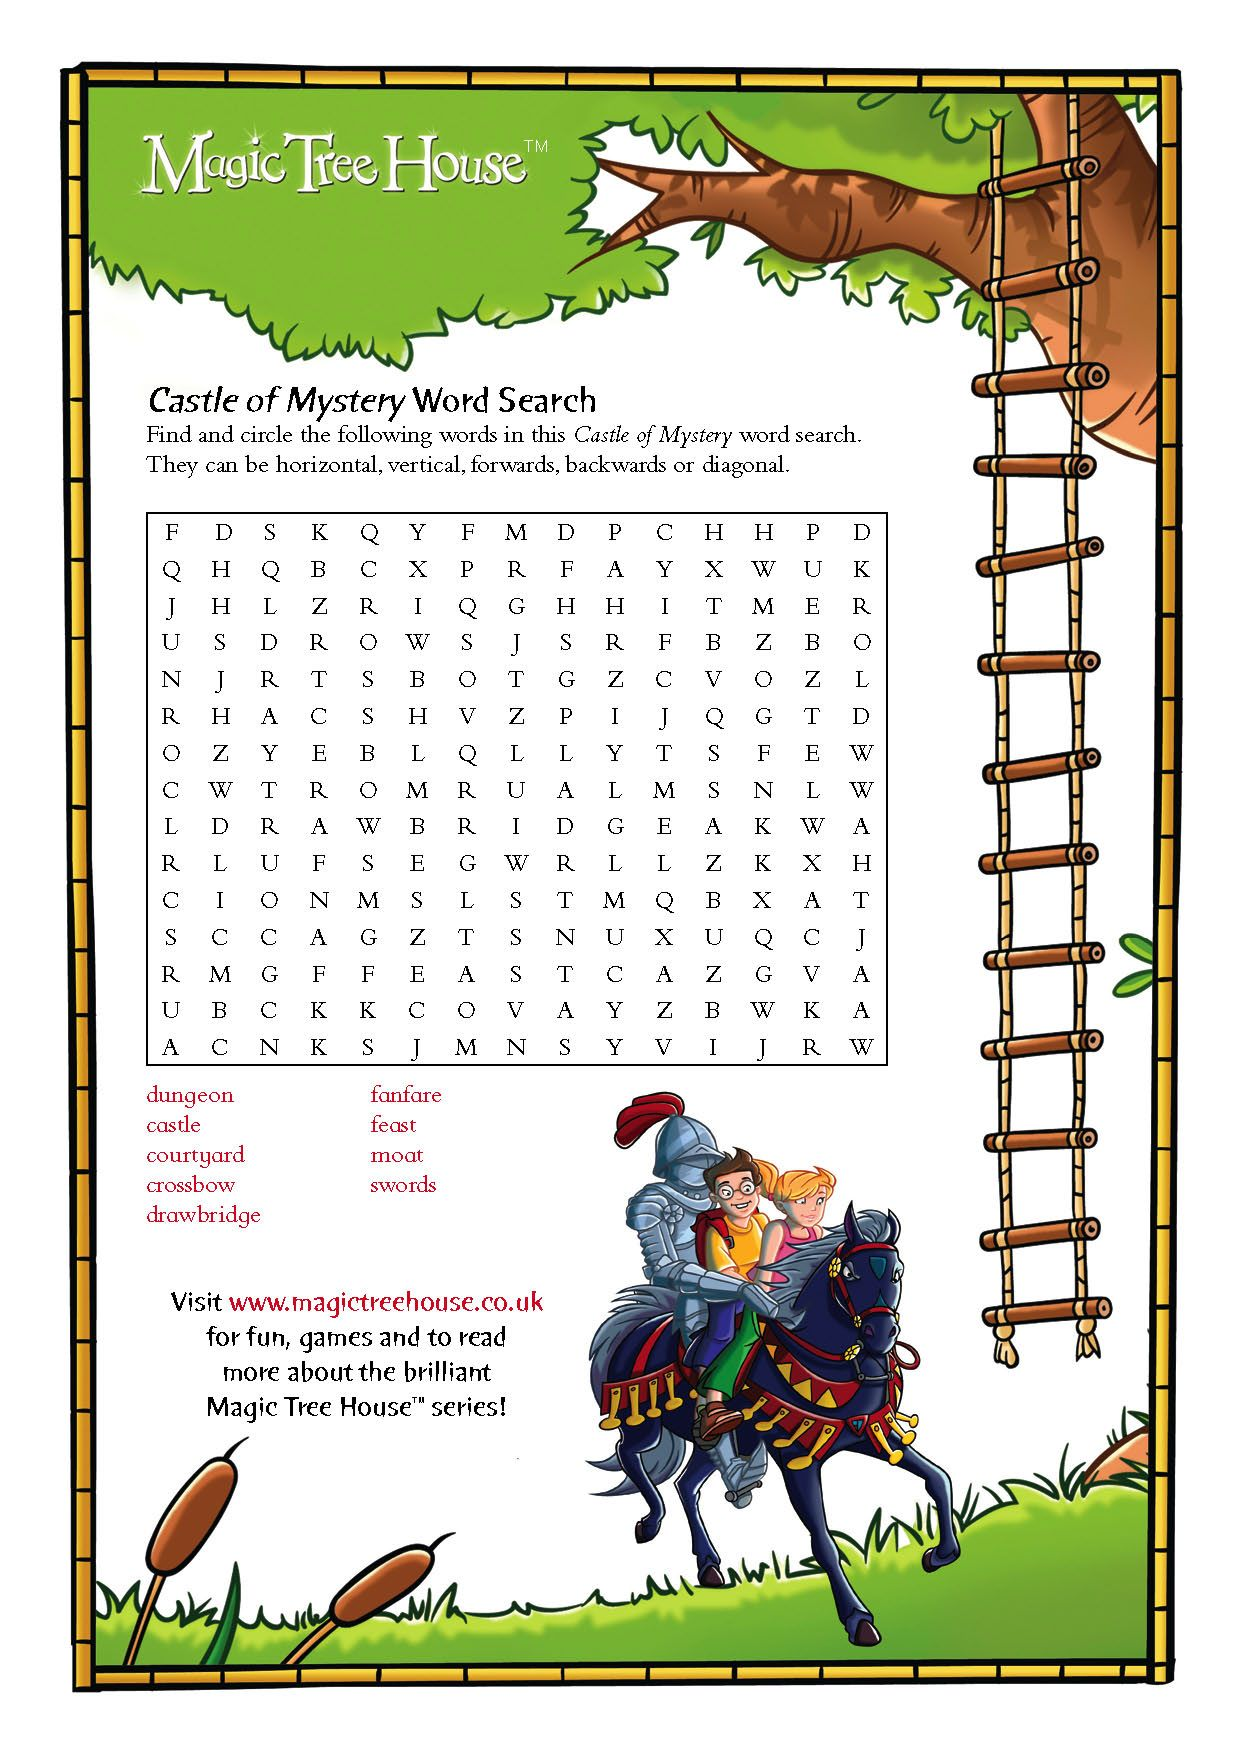 Magictreehouseword act puz 36775 | colouring pages | Pinterest